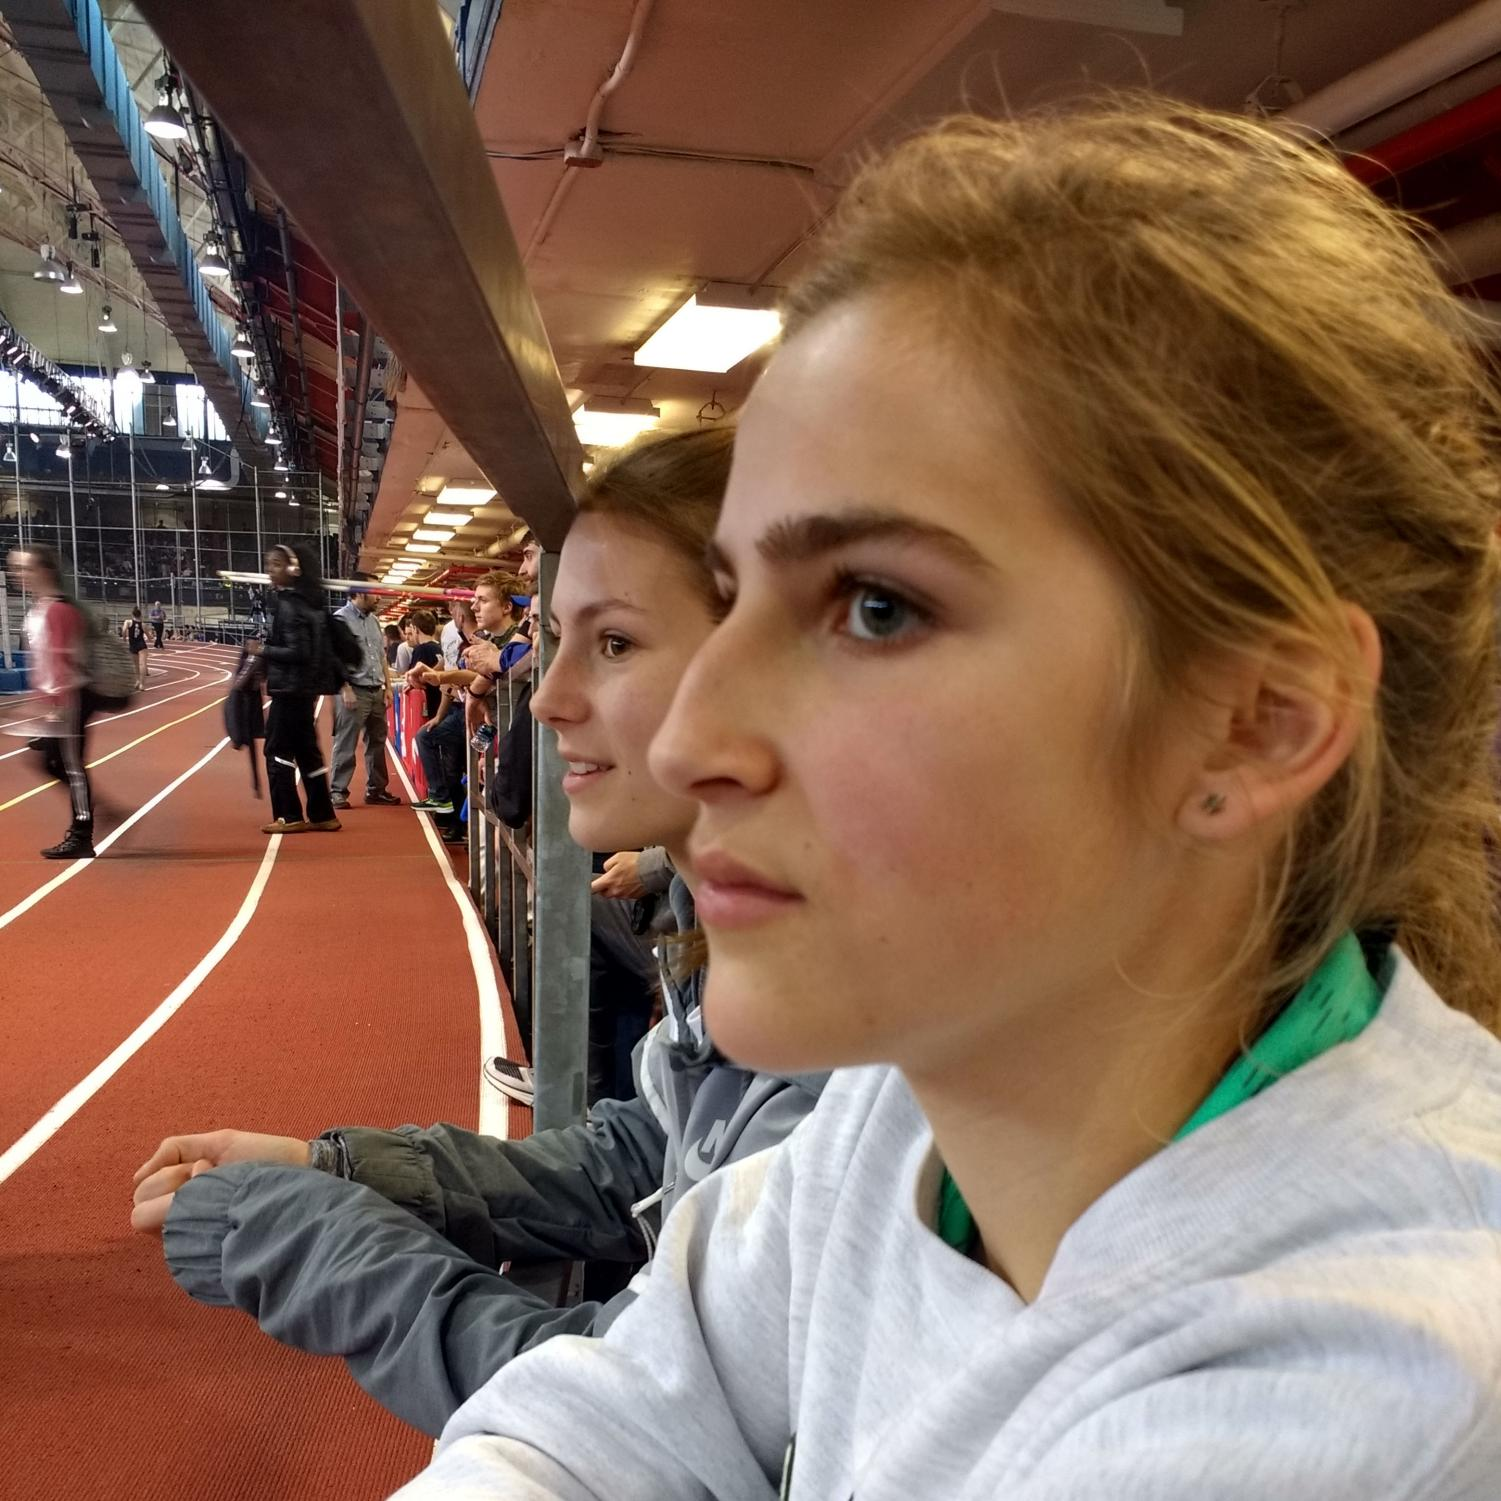 Sophomores Katie Orchard and Amy Herrema watch a track meet while thinking of all the homework they have to do.